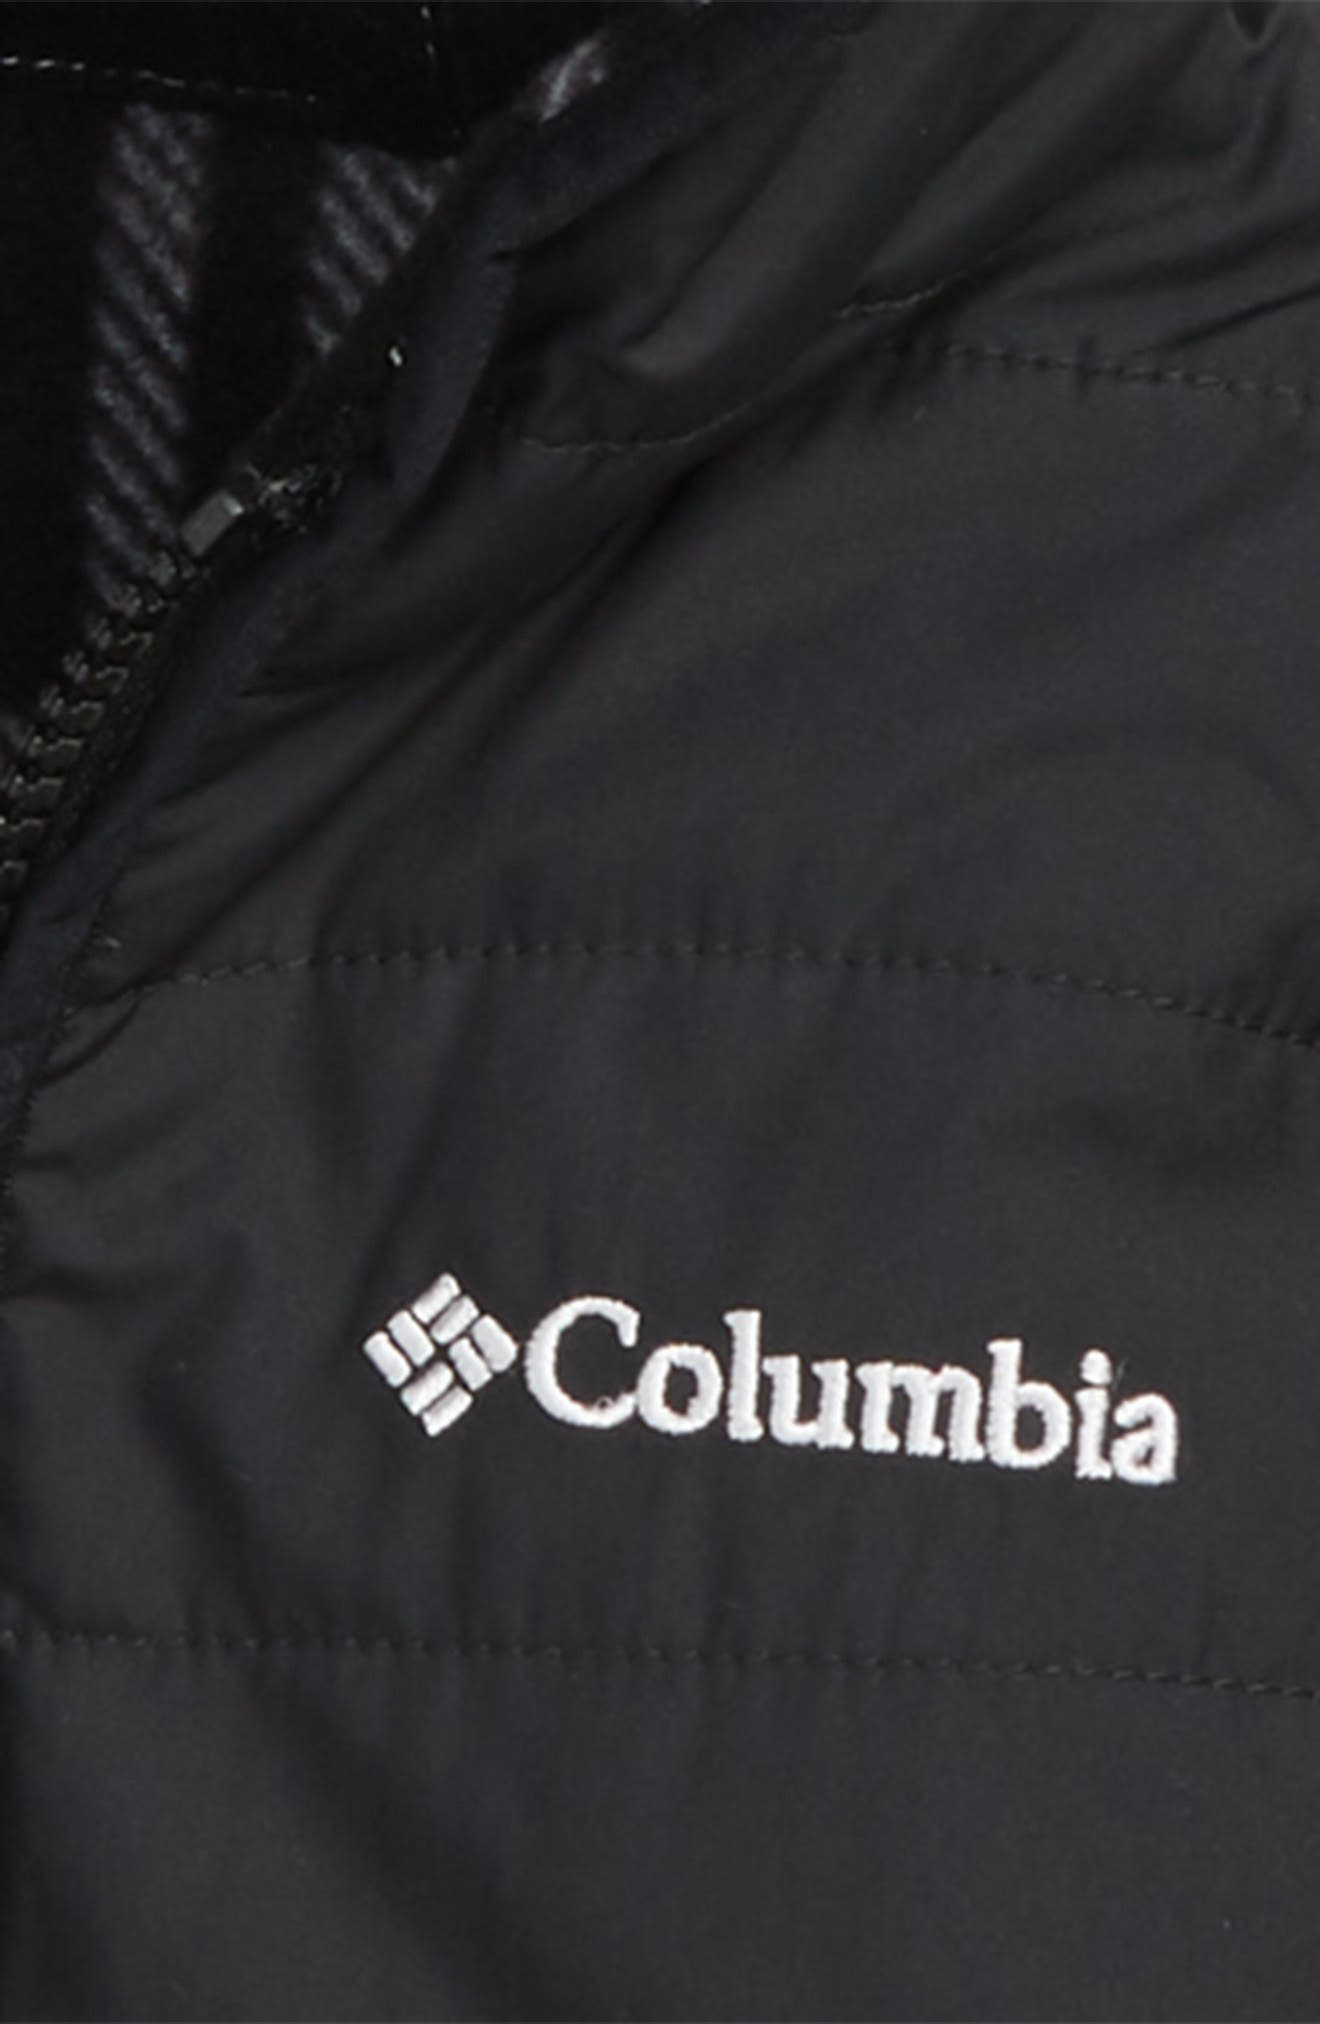 Double Trouble Omni-Shield Reversible Water-Resistant Hooded Jacket,                             Alternate thumbnail 3, color,                             BLACK